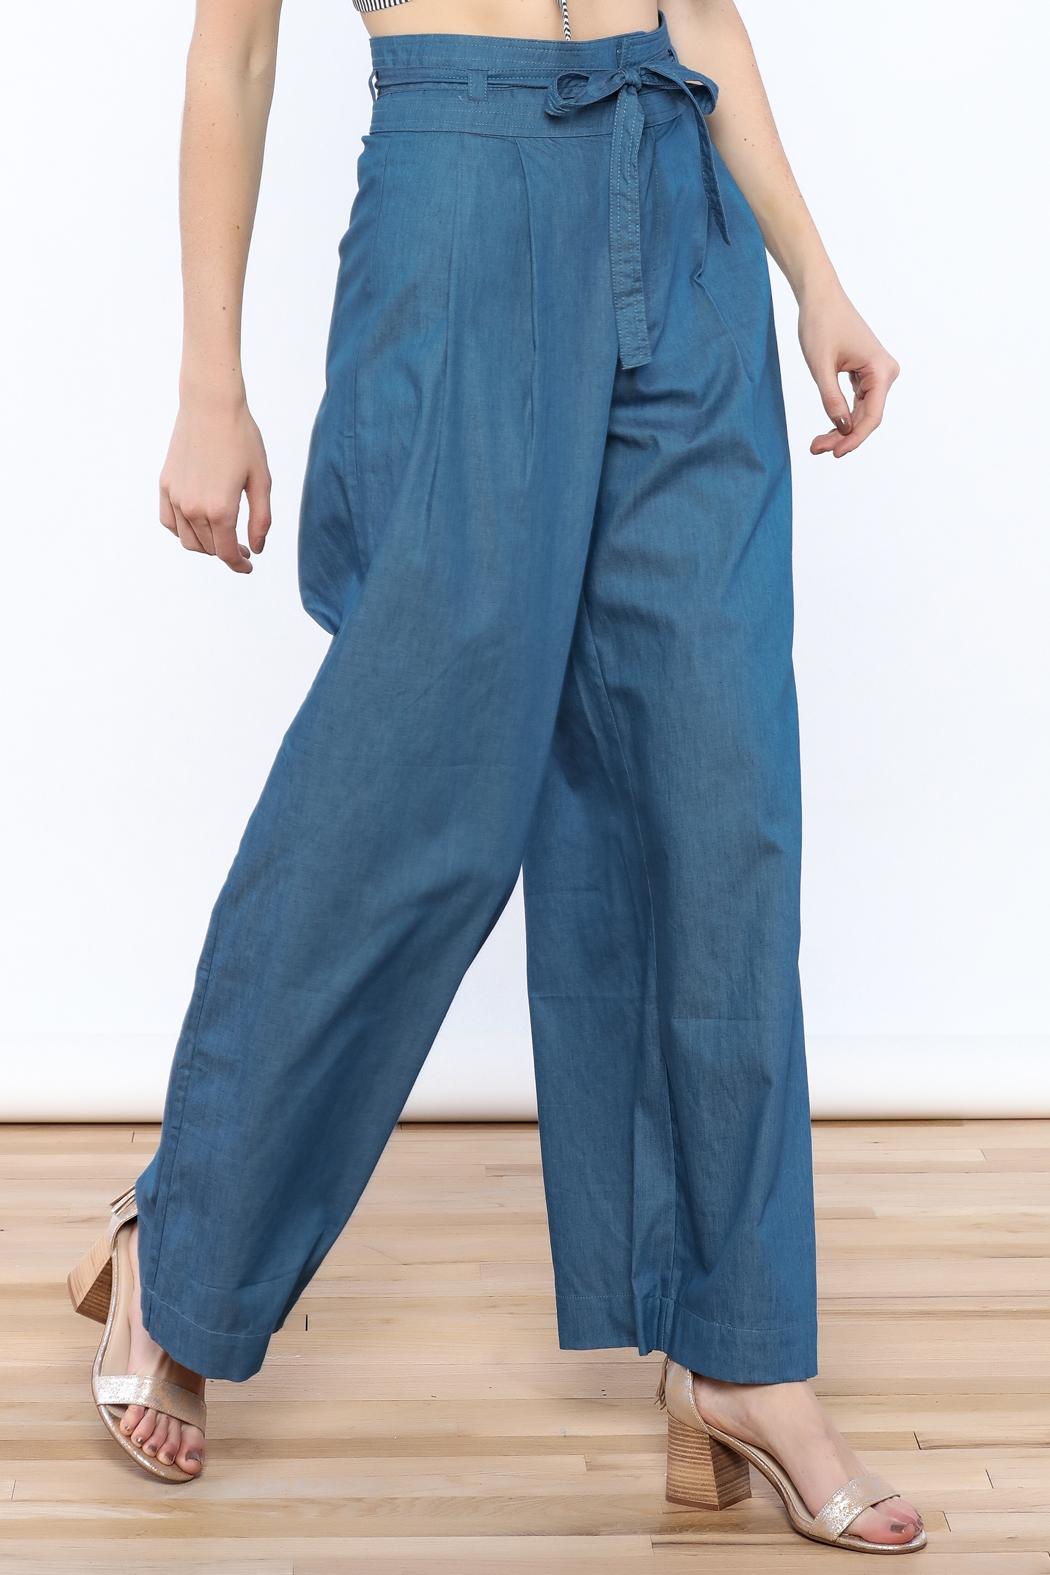 Jealous Tomato Wide Leg Denim Pants - Main Image